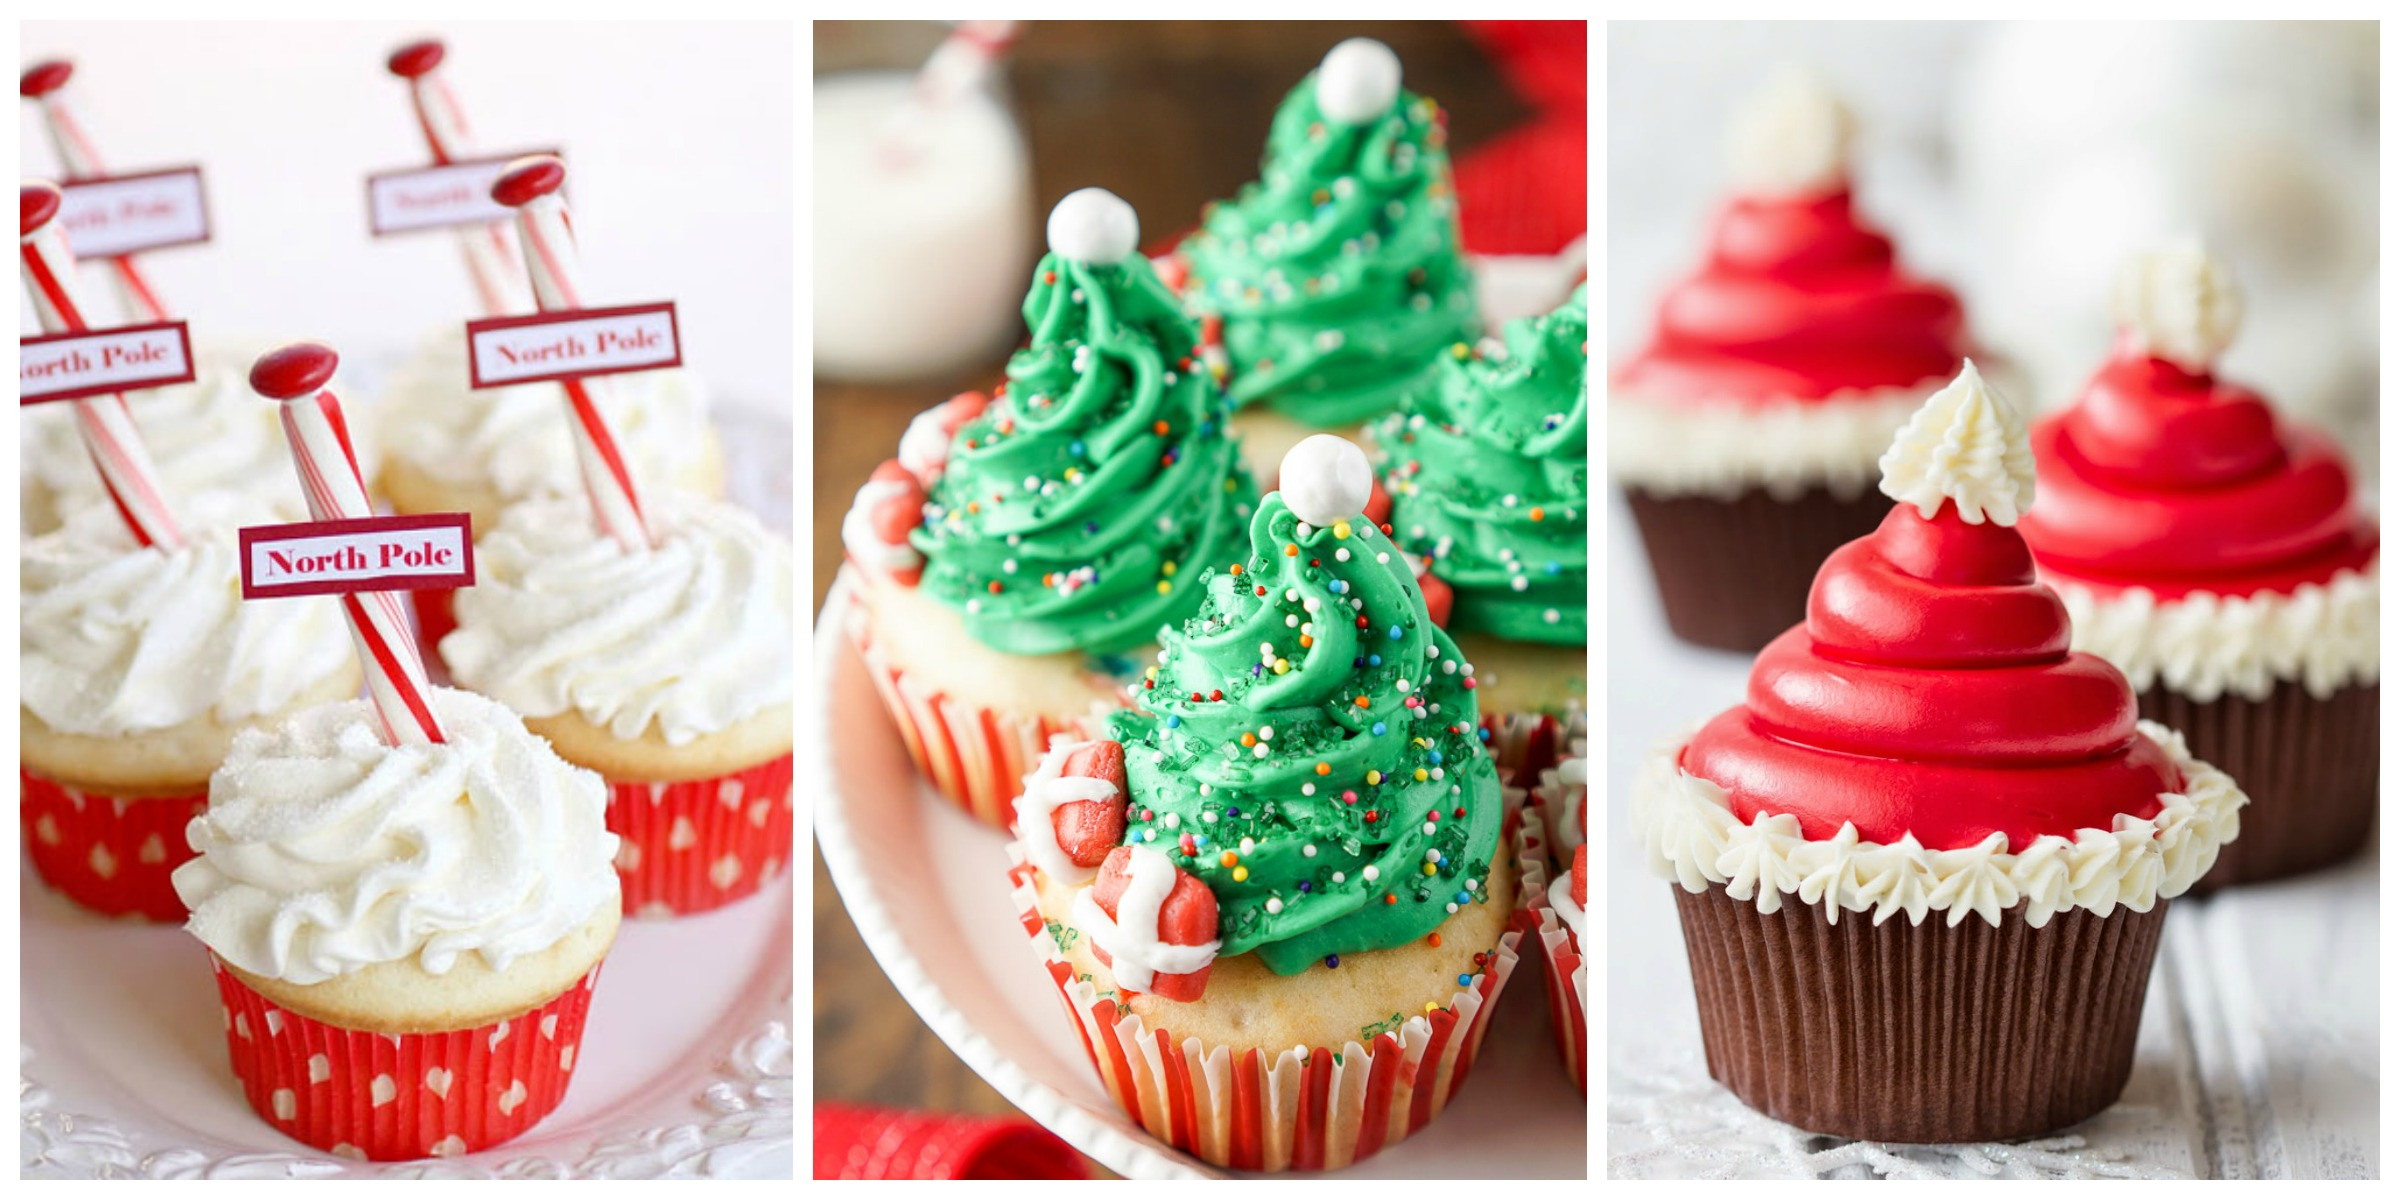 19 Christmas Cupcakes - Cupcake Decorating Ideas